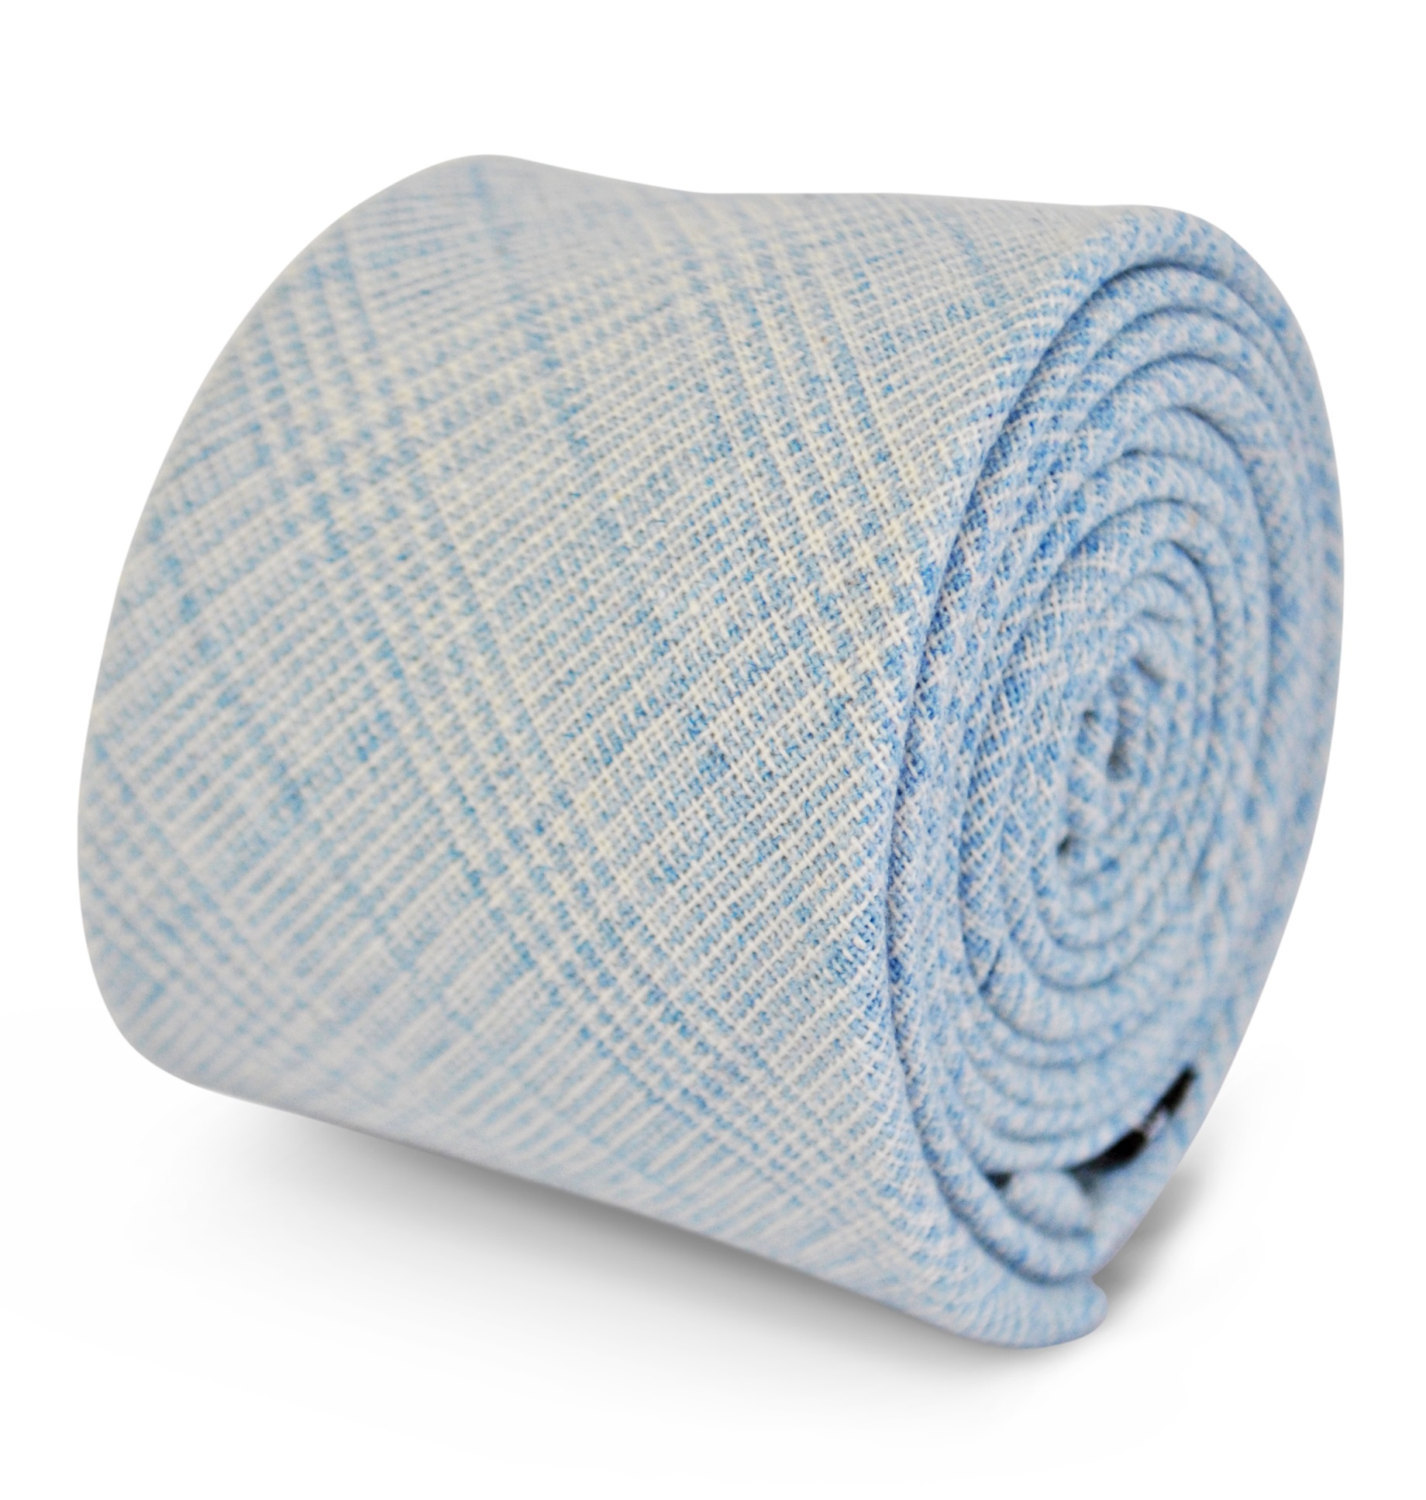 light blue and white cotton linen tie by Frederick Thomas FT3112